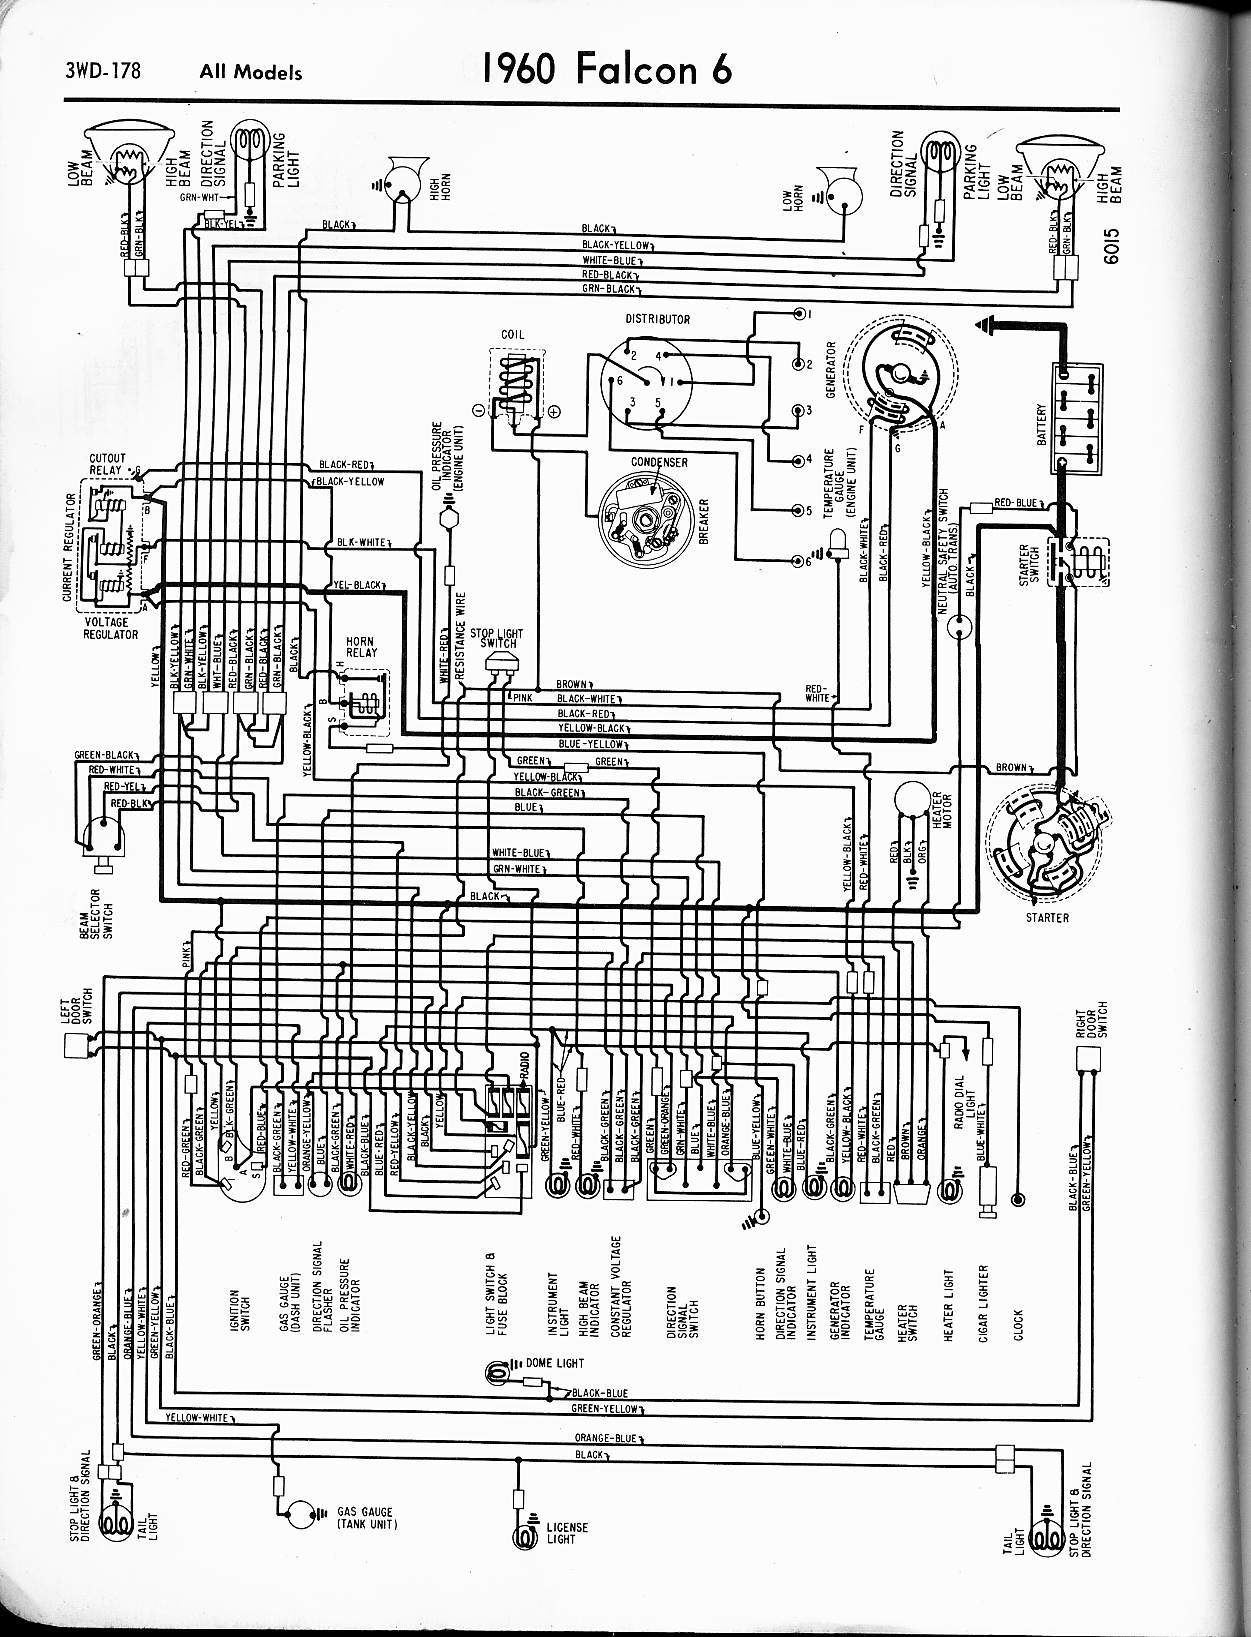 [WRG-2586] 1994 Chevy Astro Wiring Diagram Free Download